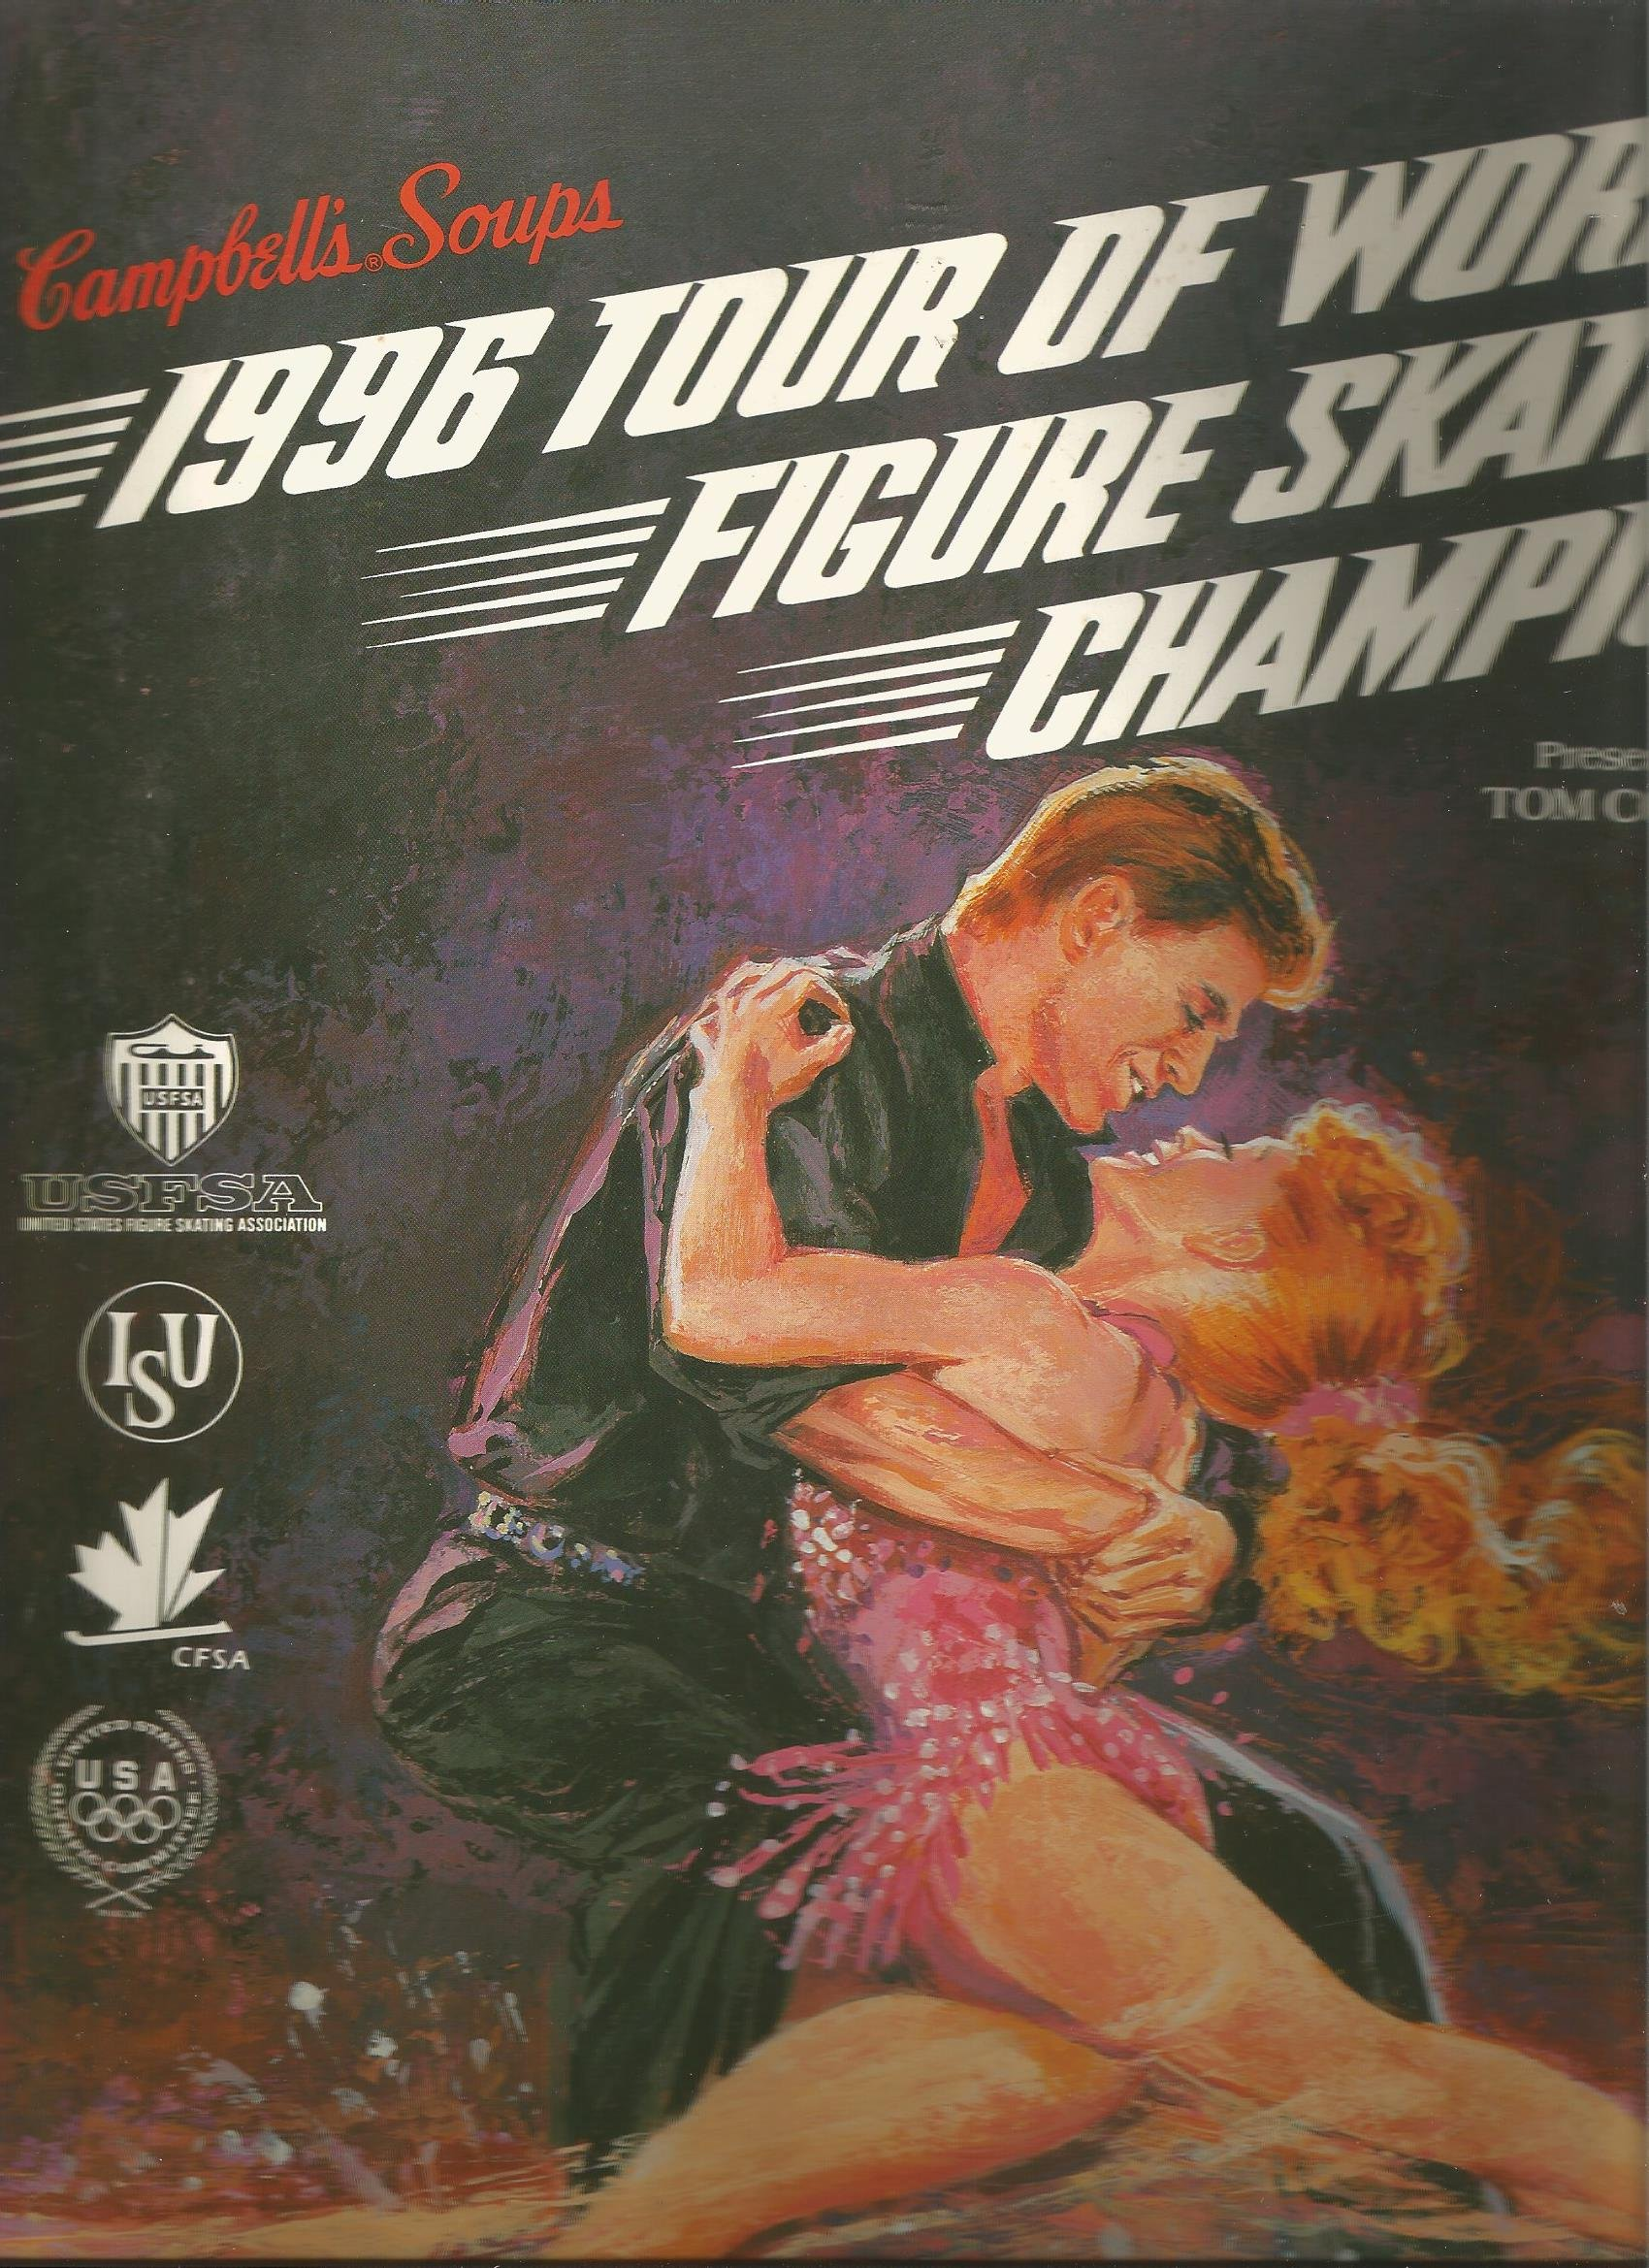 Campbells Soup 1996 Tour of World Figure Skating Champions (Program) Paperback – 1996